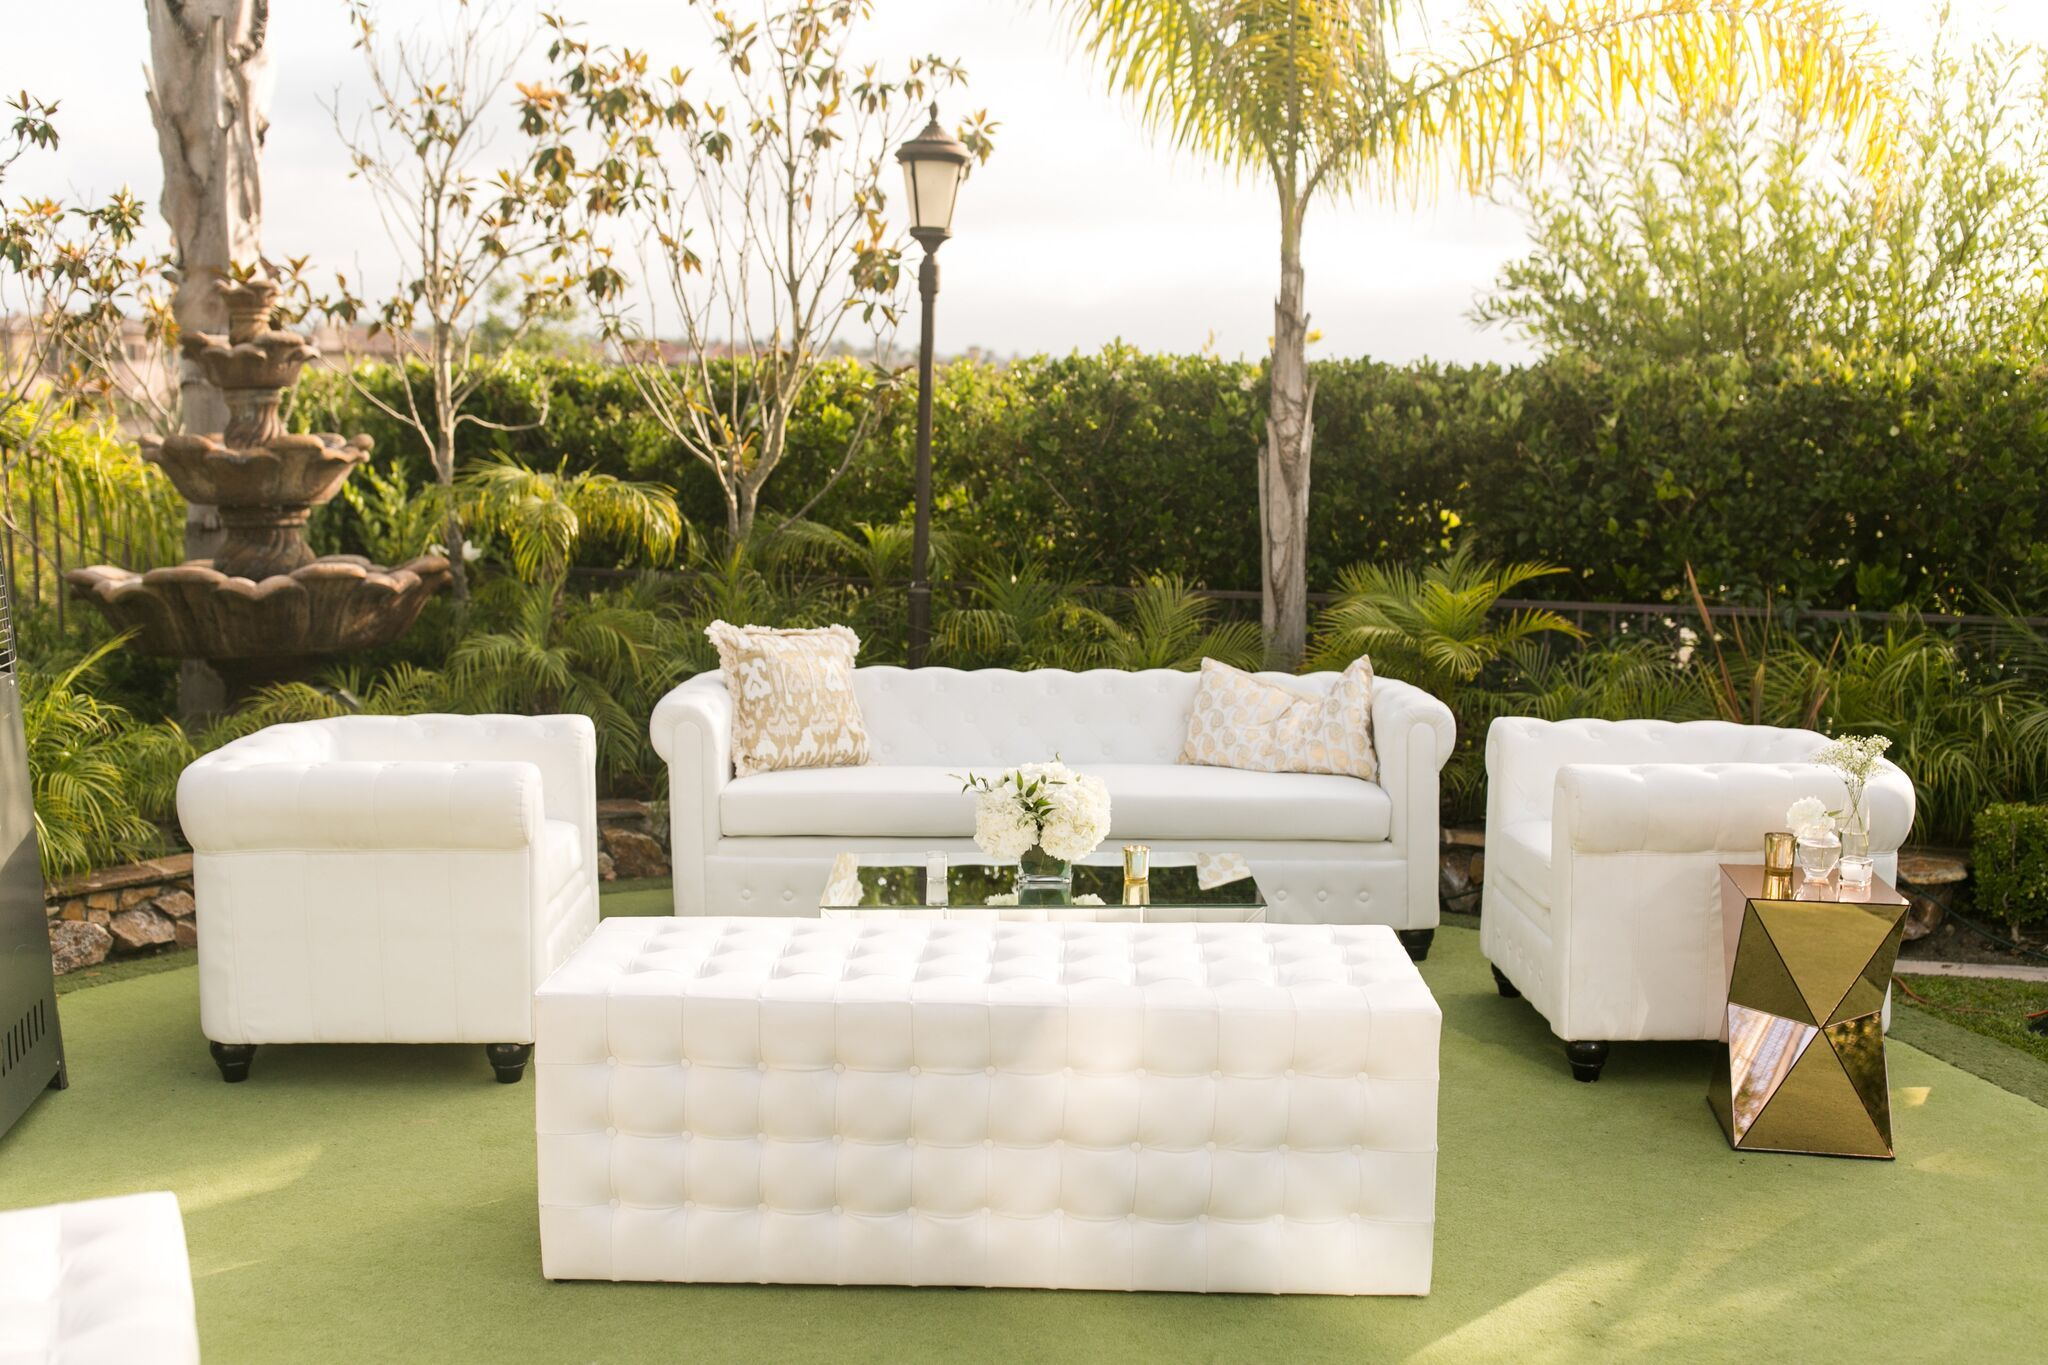 White leather furniture backyard party coordinated by gabi events outdoor furniture hire elegance florals s floral design